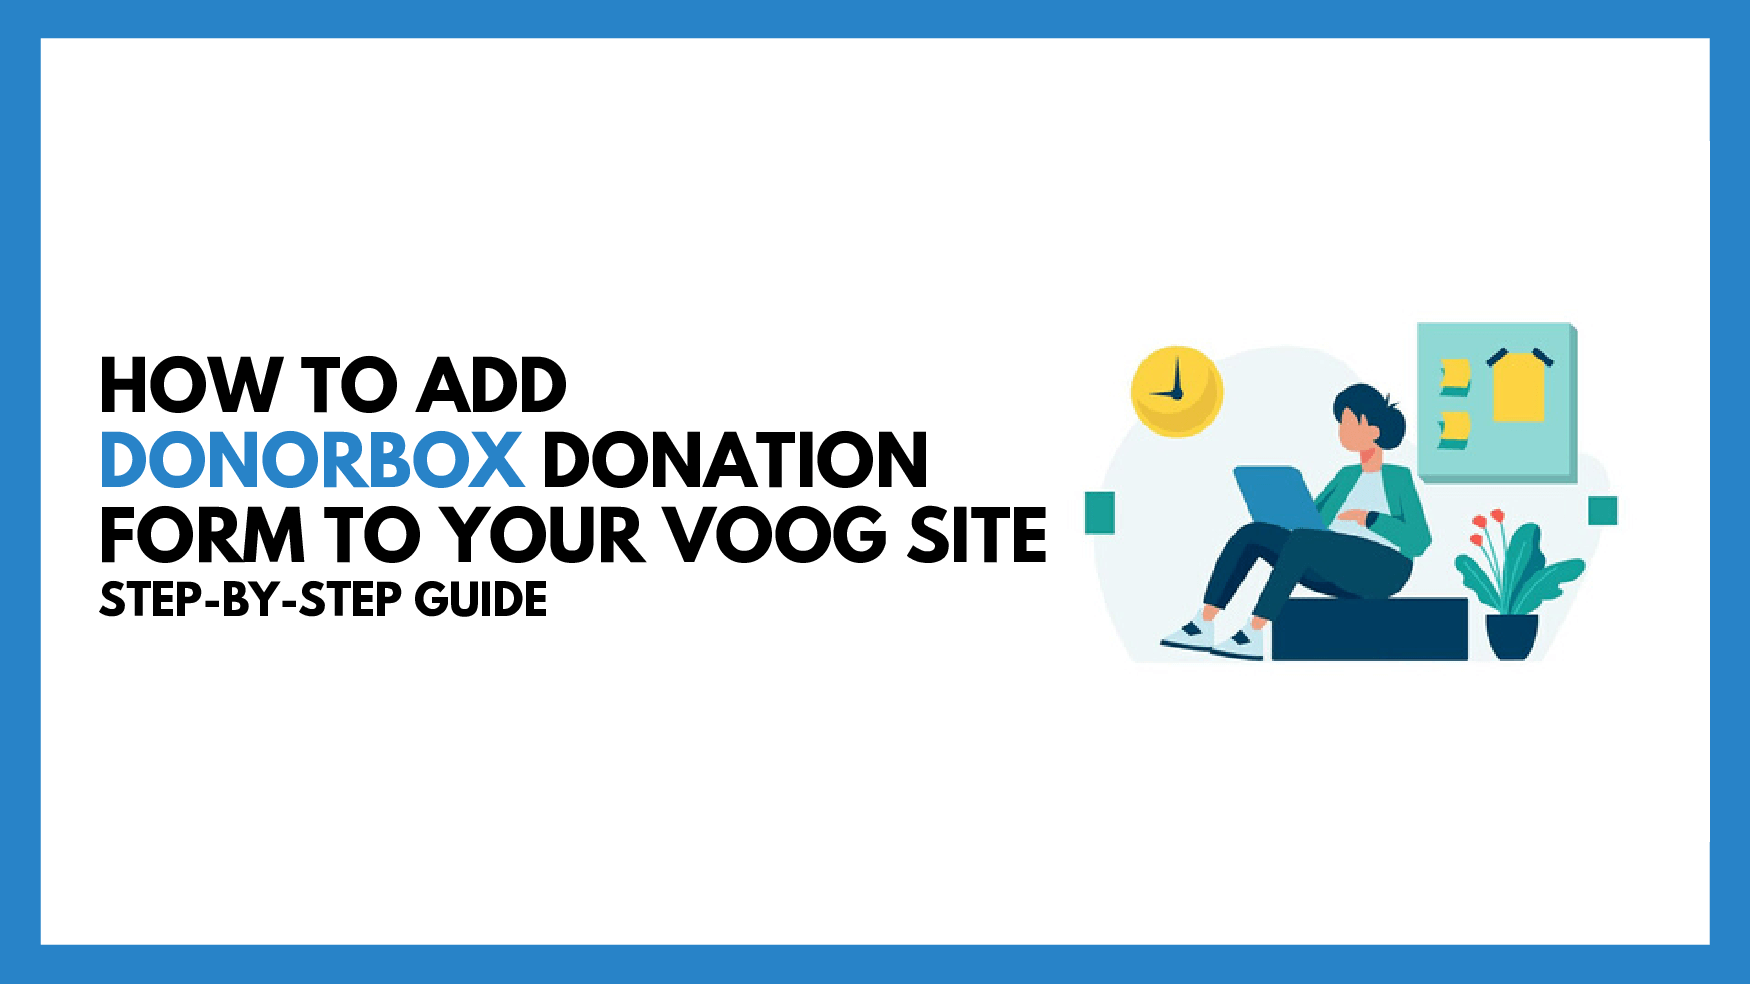 How To Add Donorbox Donation Form To Your Voog Site| Step-by-Step Guide